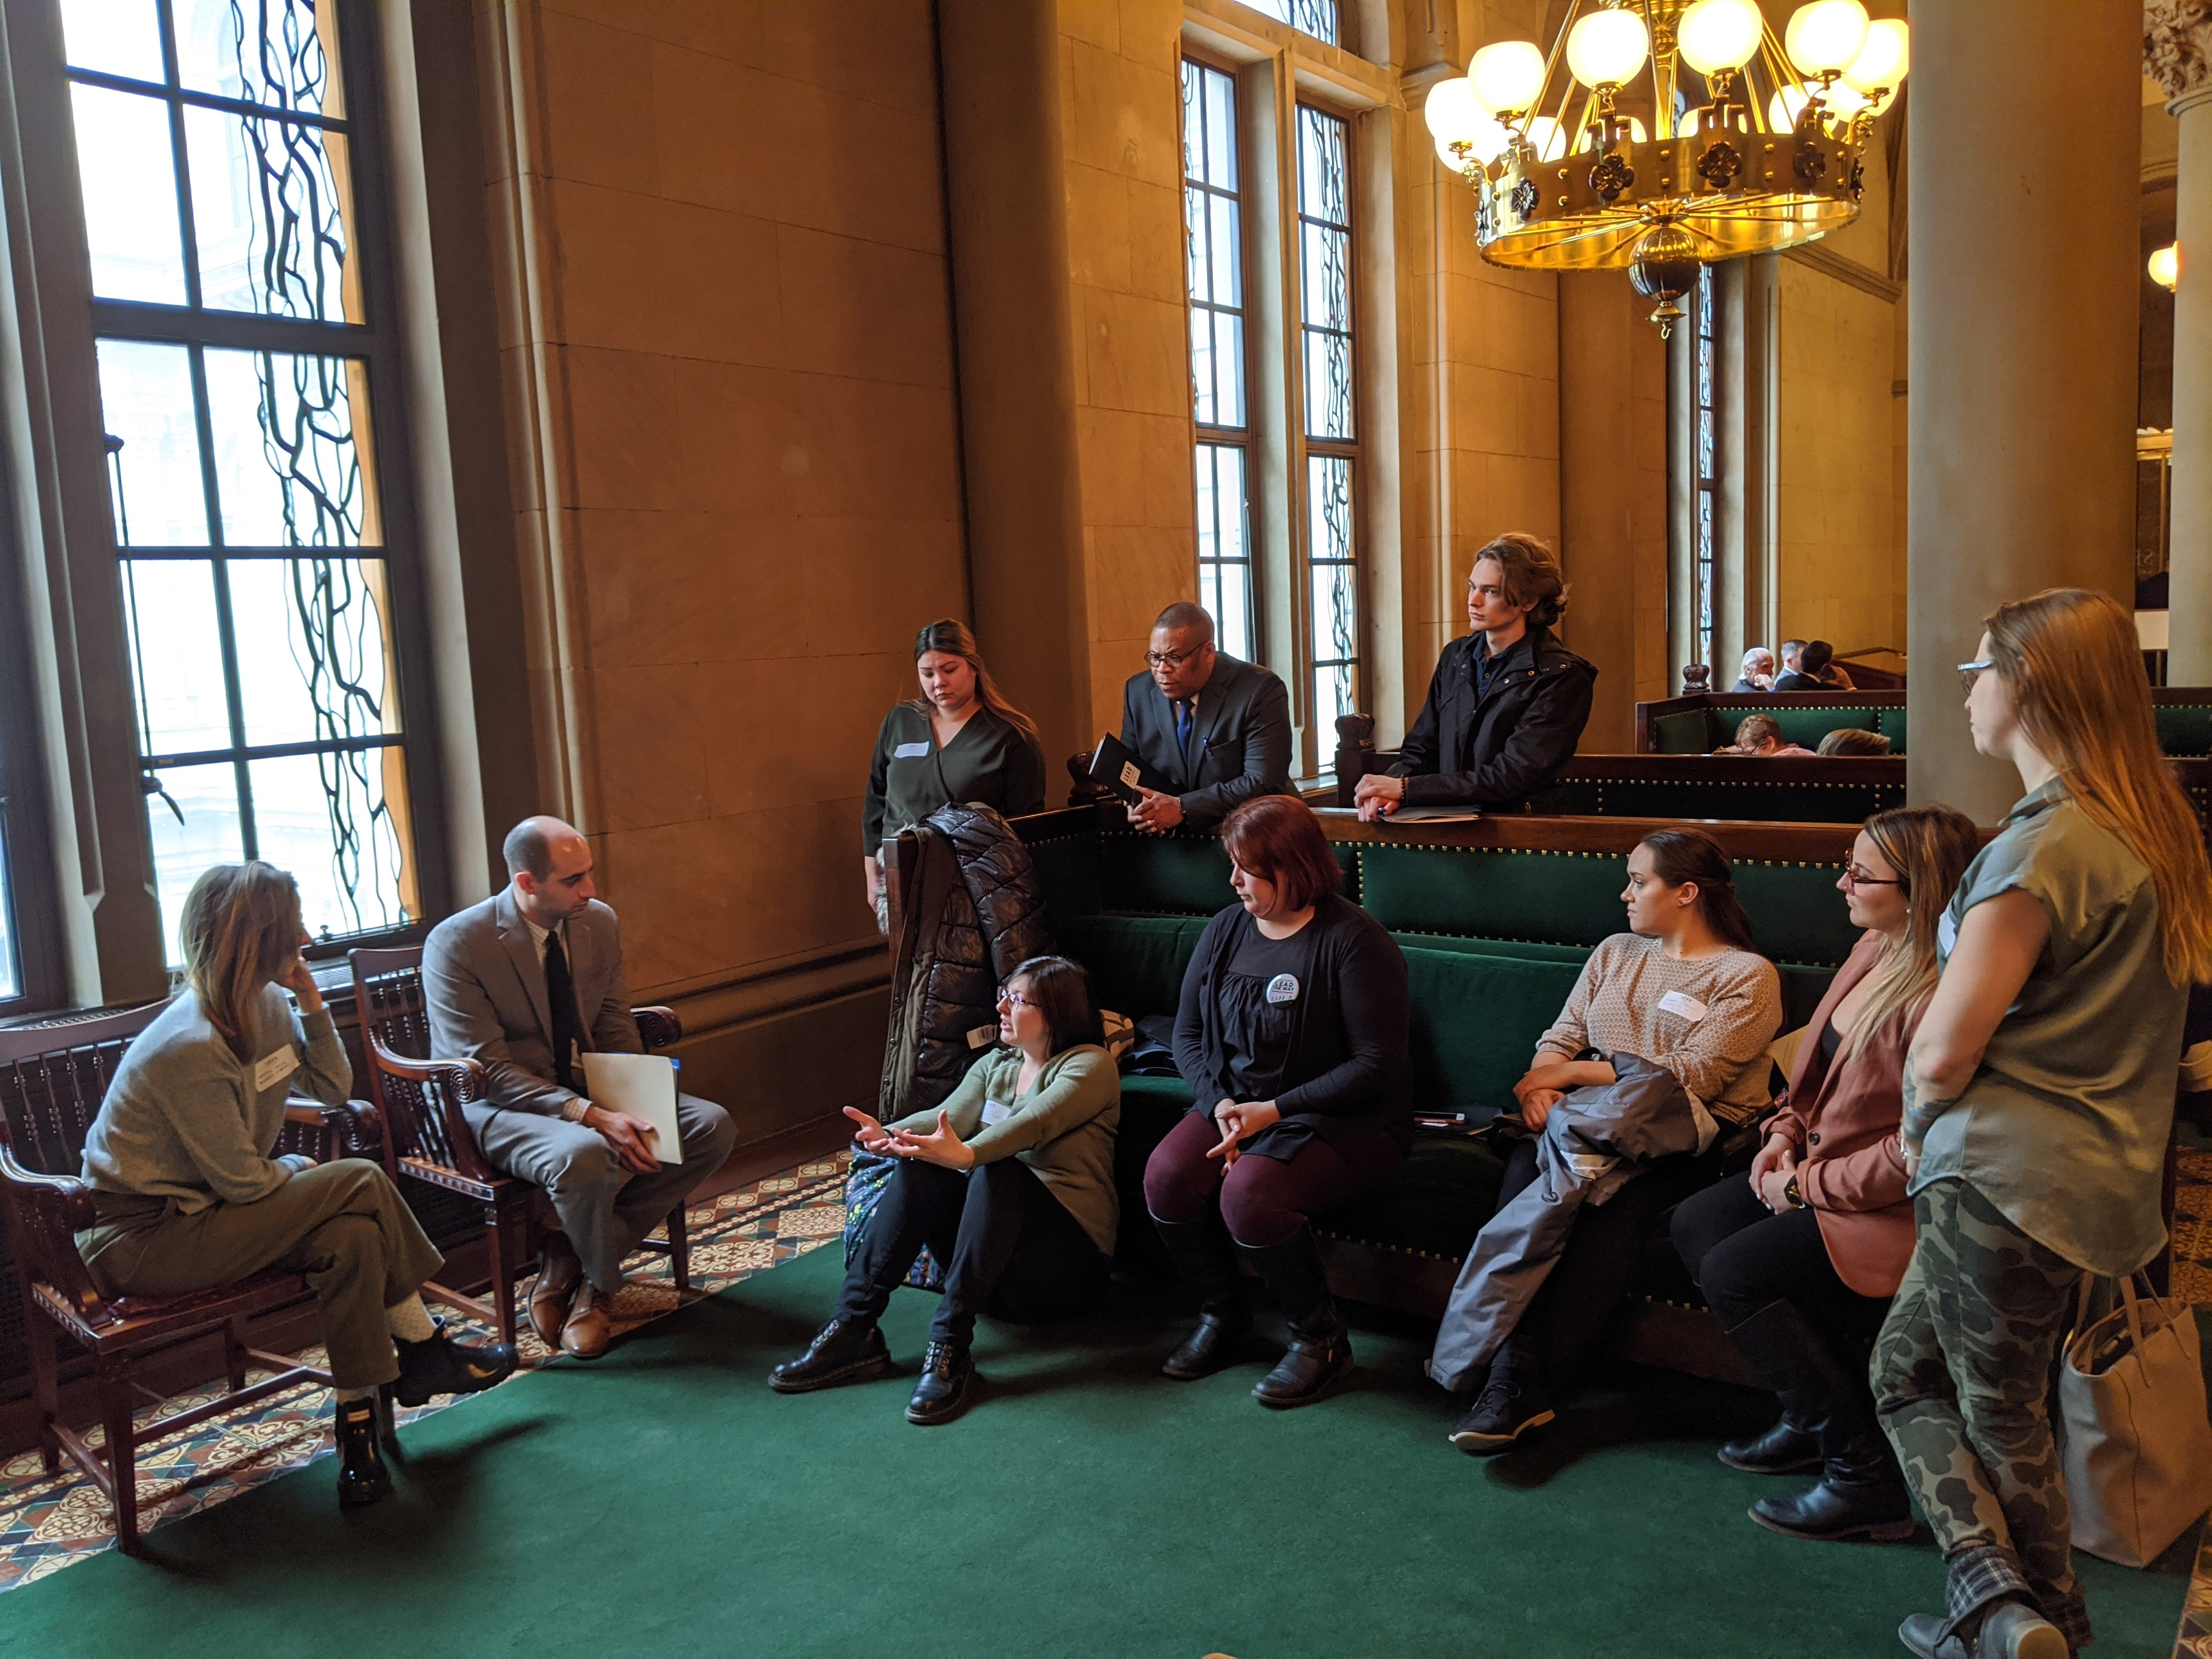 Group is shown in NYS Senate Chamber waiting area. KAt Wilson is seated in front of a couch and is gesturing with her hands as the group listens,